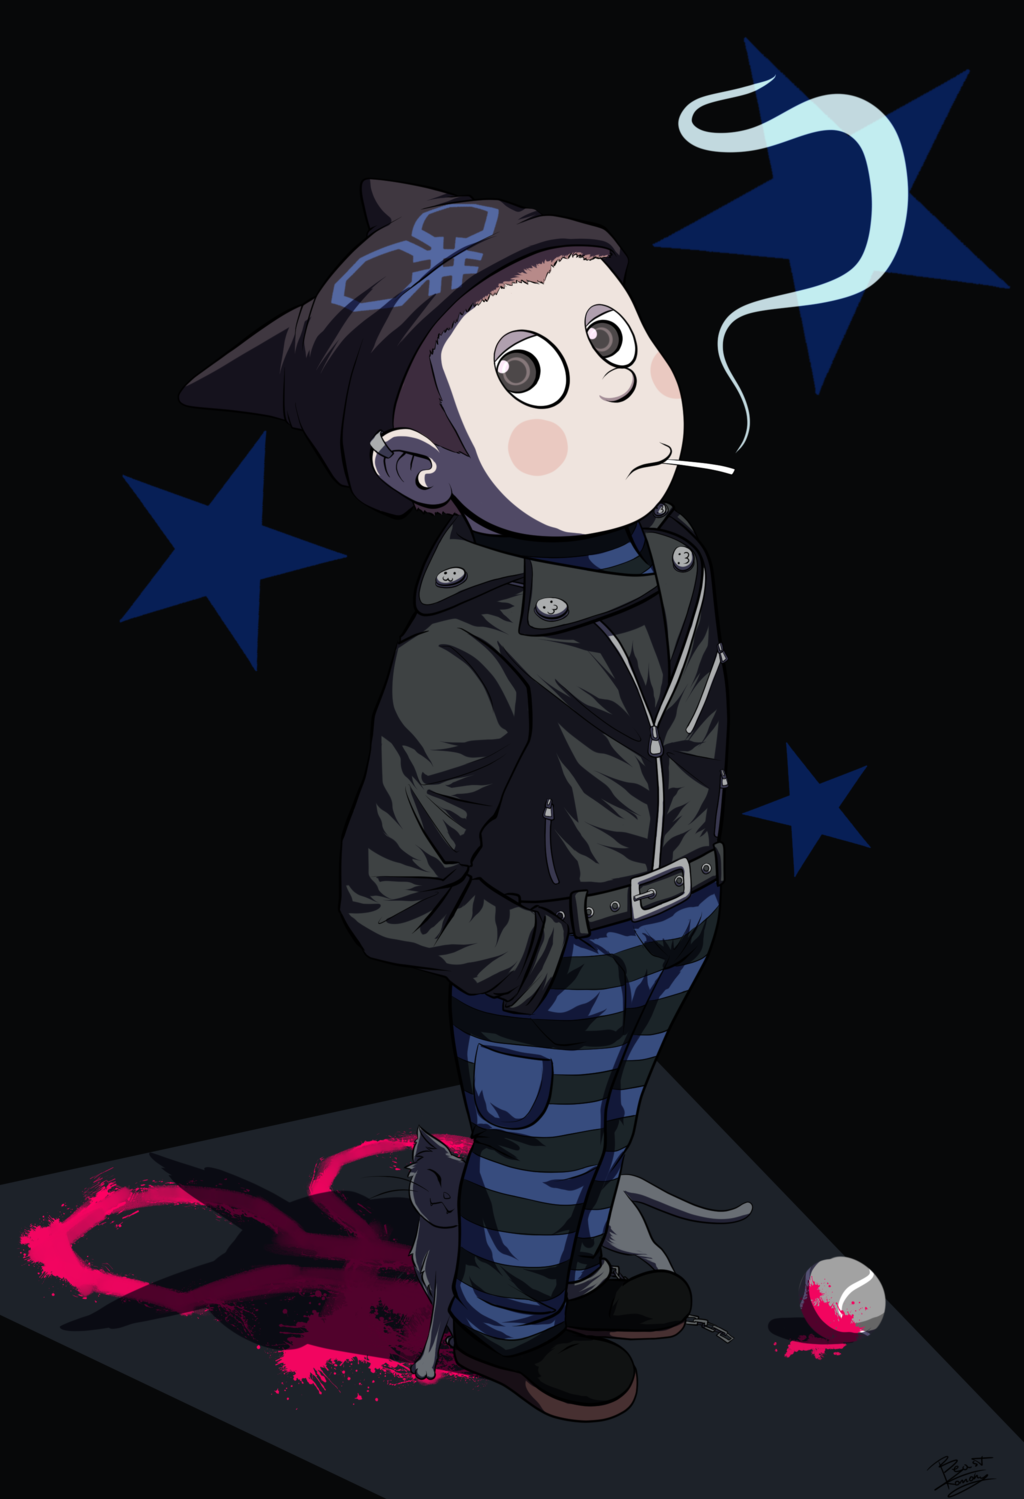 Ryoma Hoshi And The Cat By Beastkonoha Dbigo3x Png 1024 1499 Danganronpa Haikyuu Characters Anime Characters This is just something i wanted to make because i love danganronpa so much. pinterest